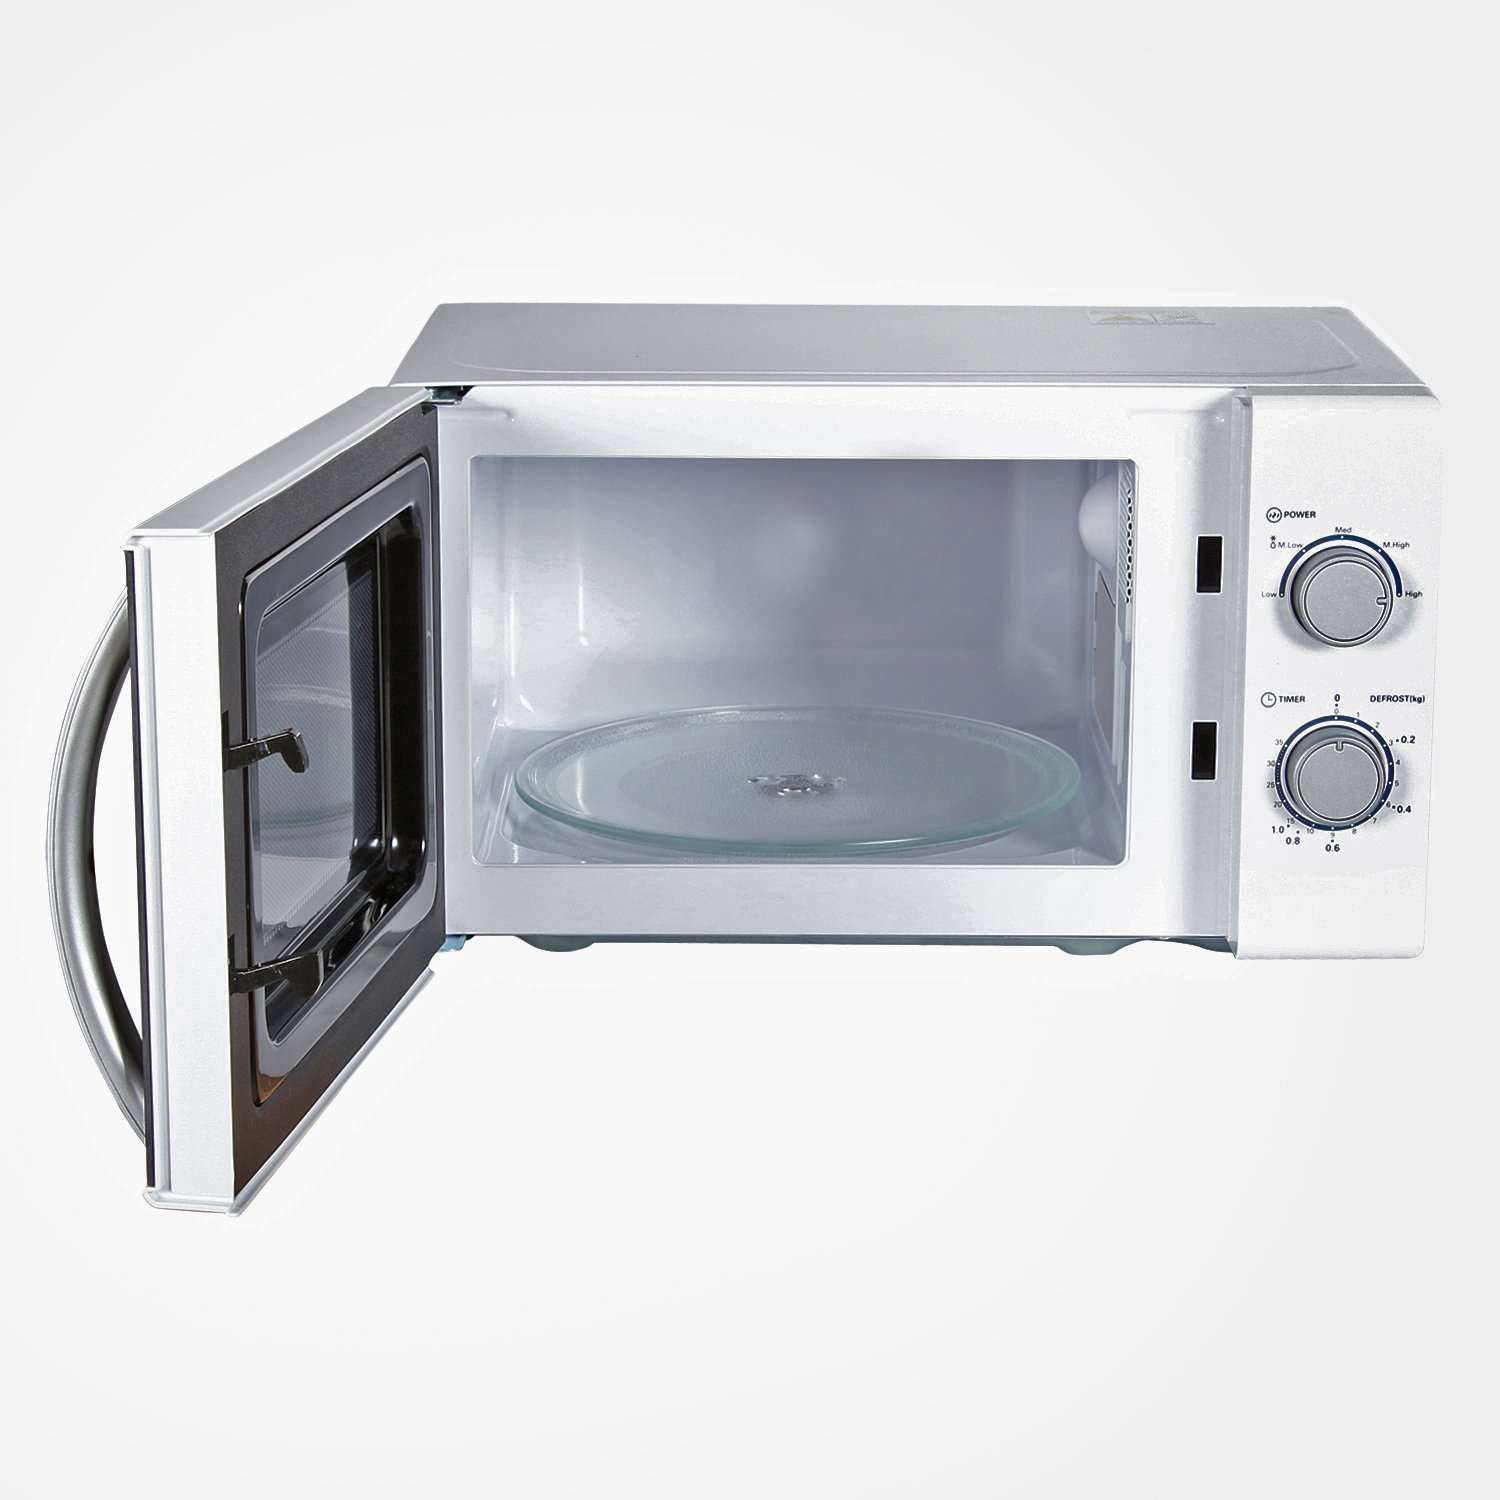 Kenstar 17 liters microwave oven white